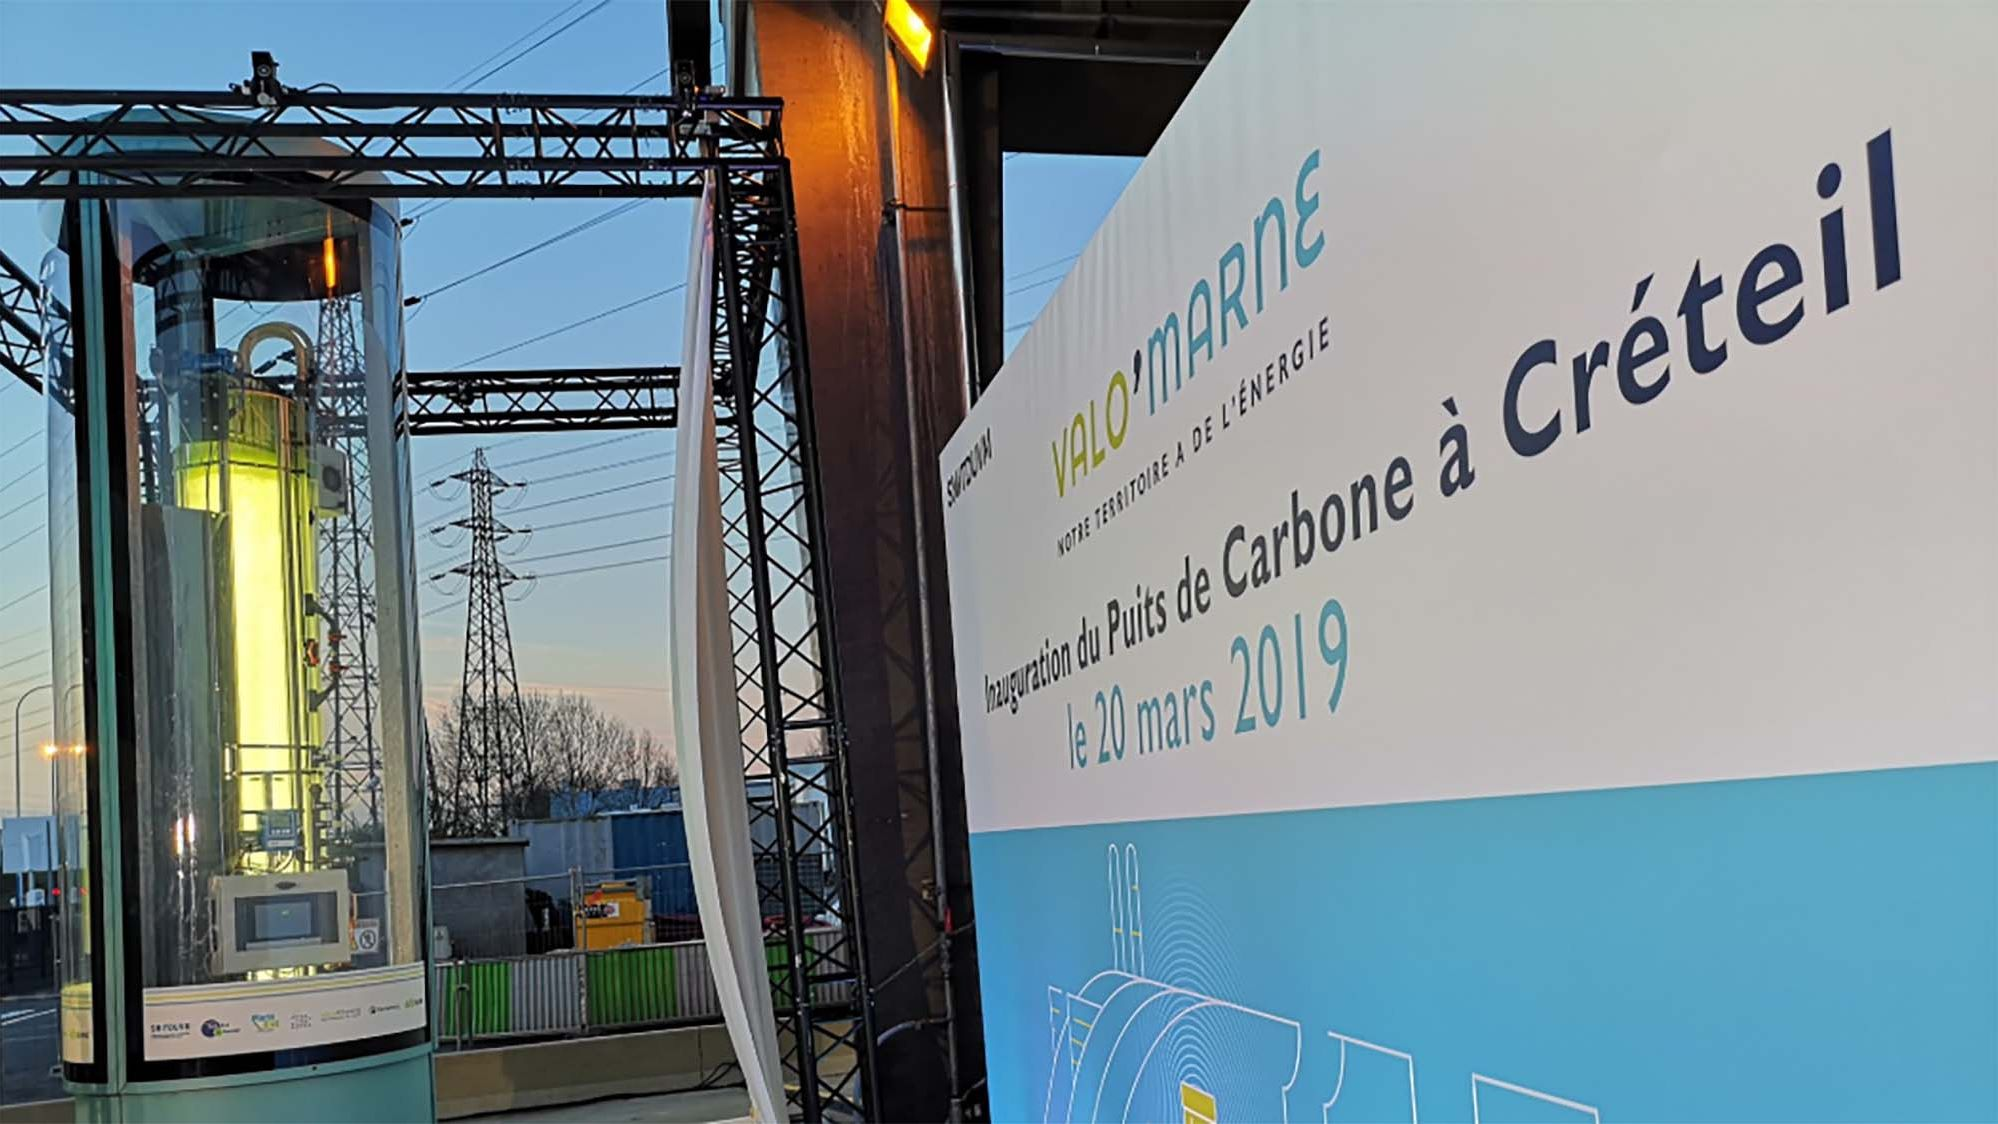 Inauguration puits de carbone Valo Marne